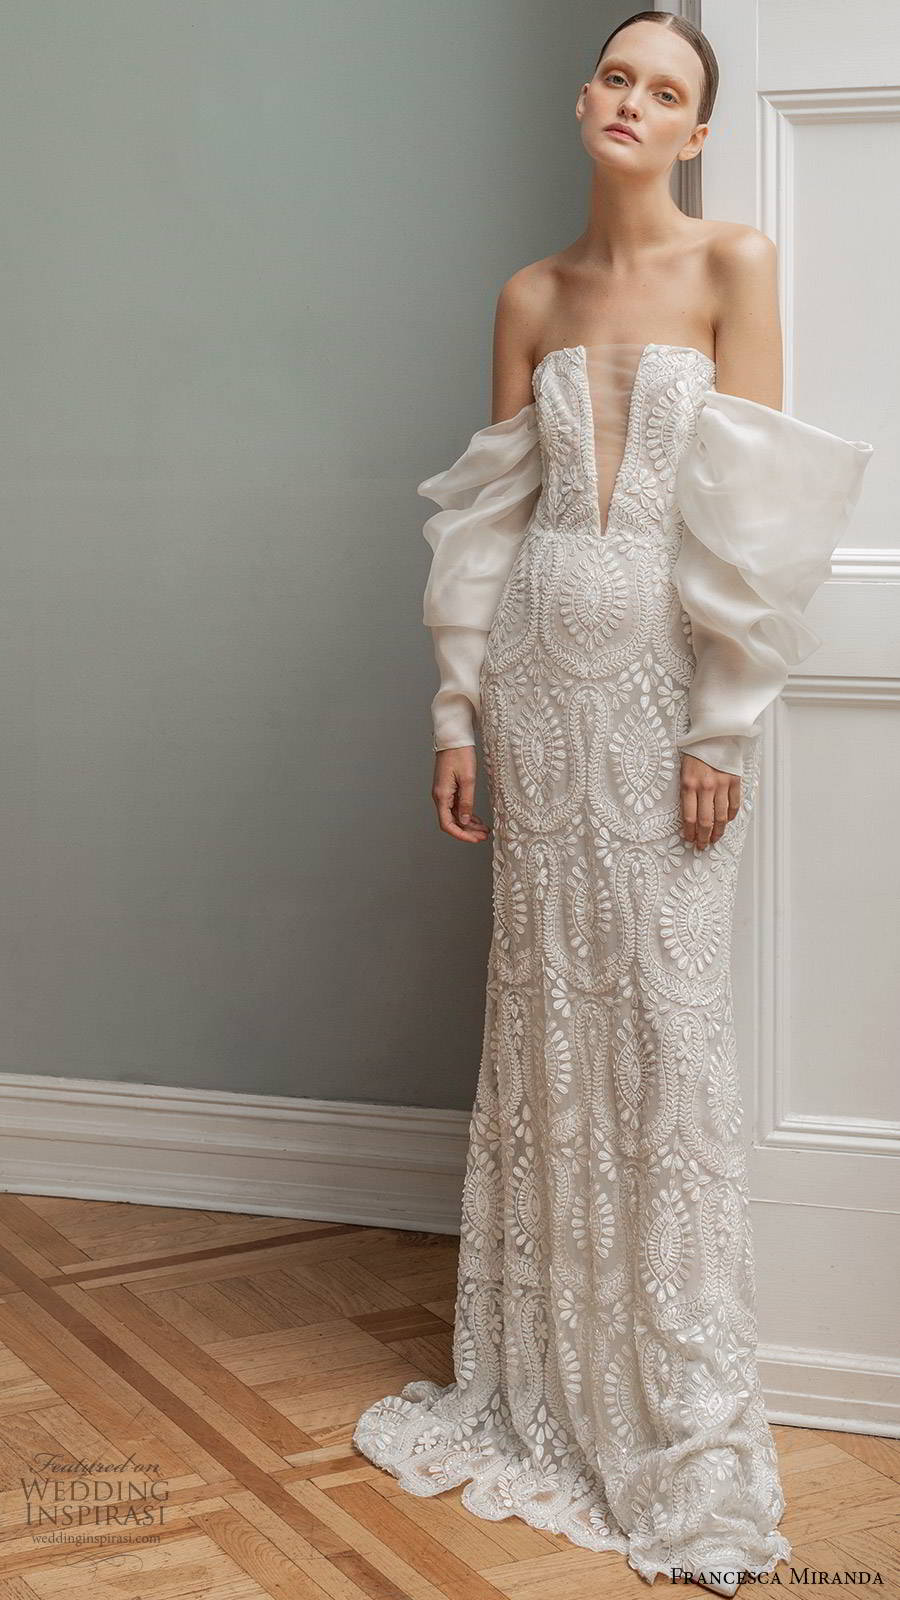 francesca miranda spring 2020 bridal detached long sleeves straight across illusion plunging neckline fully embellished lace fit flare mermaid sheath wedding dress modern sweep train (7) mv